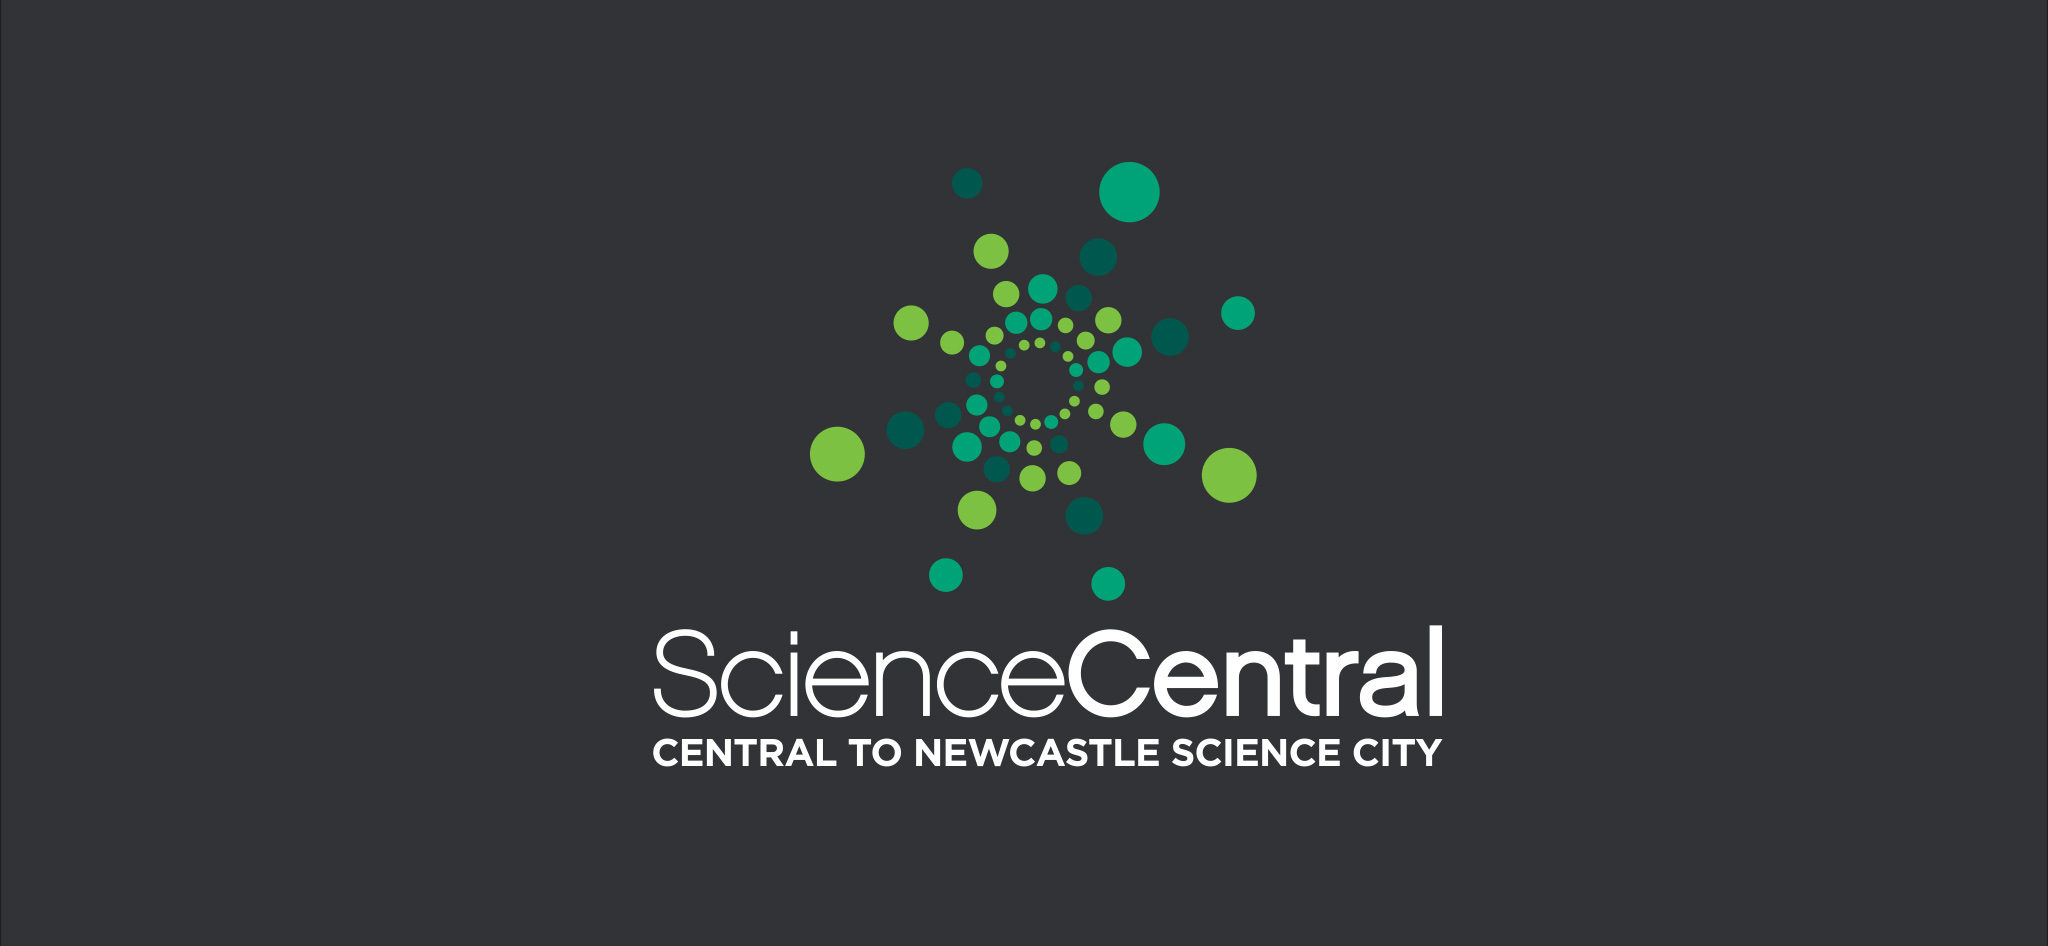 Science Central Portfolio Image 1